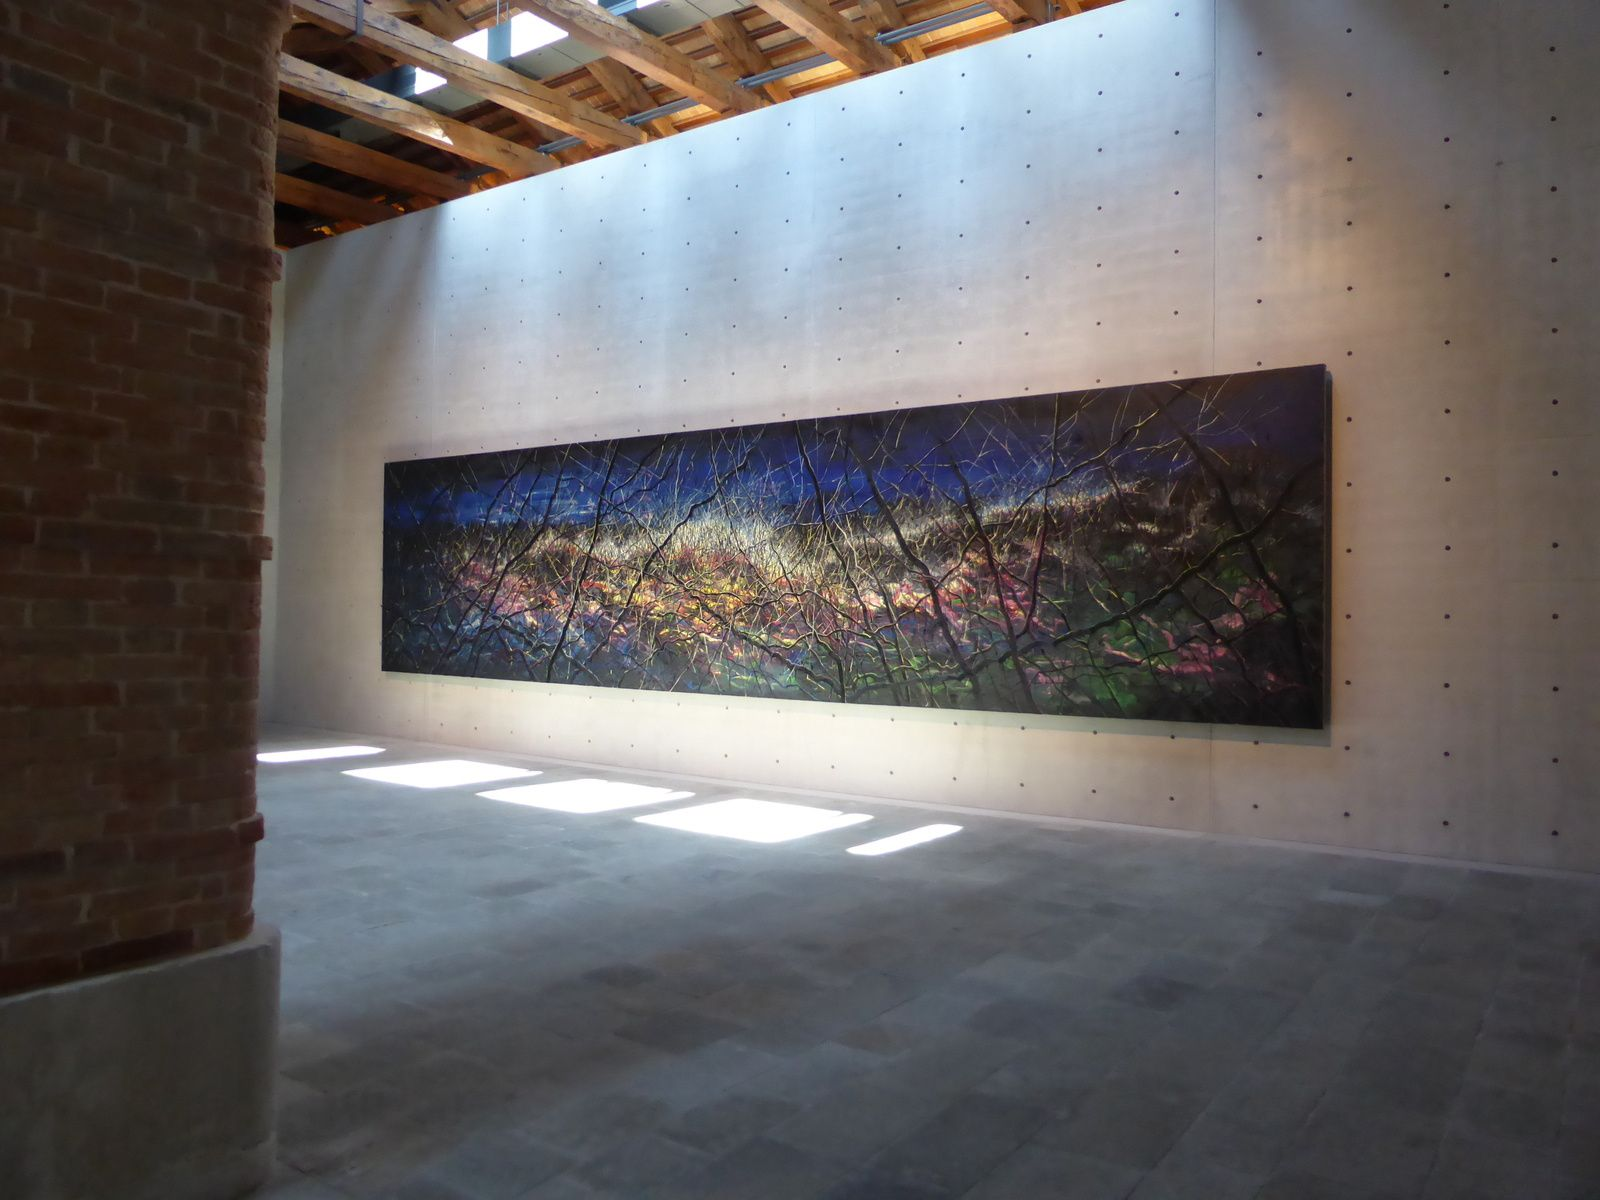 Zeng Fanzhi, This Land so Rich in Beauty no.2, 2010, huile sur toile 1050 x 250 cm © photo Gilles Kraemer, journée presse, Punta della Dogana, mardi 28 mai 2013.